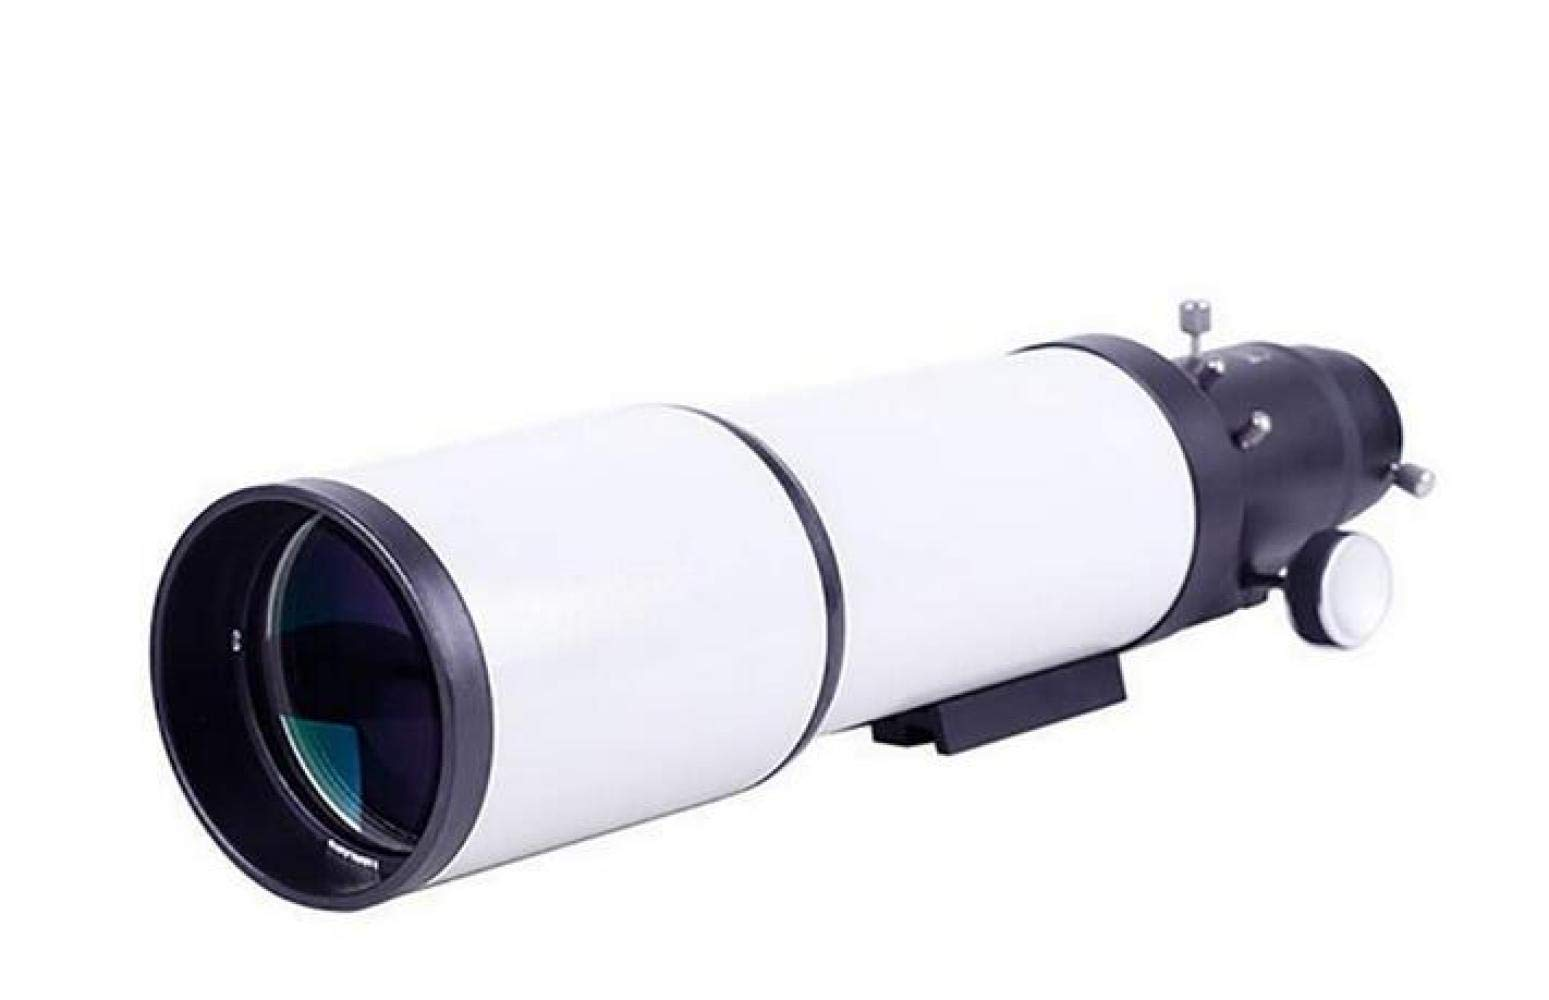 CTO Telescope C5 F500 F/5.6 SLR Telephoto Photographic Headportable Tabletop M42X0.75 Thread for Beginners, Kids,A,Telescope by CTO (Image #2)